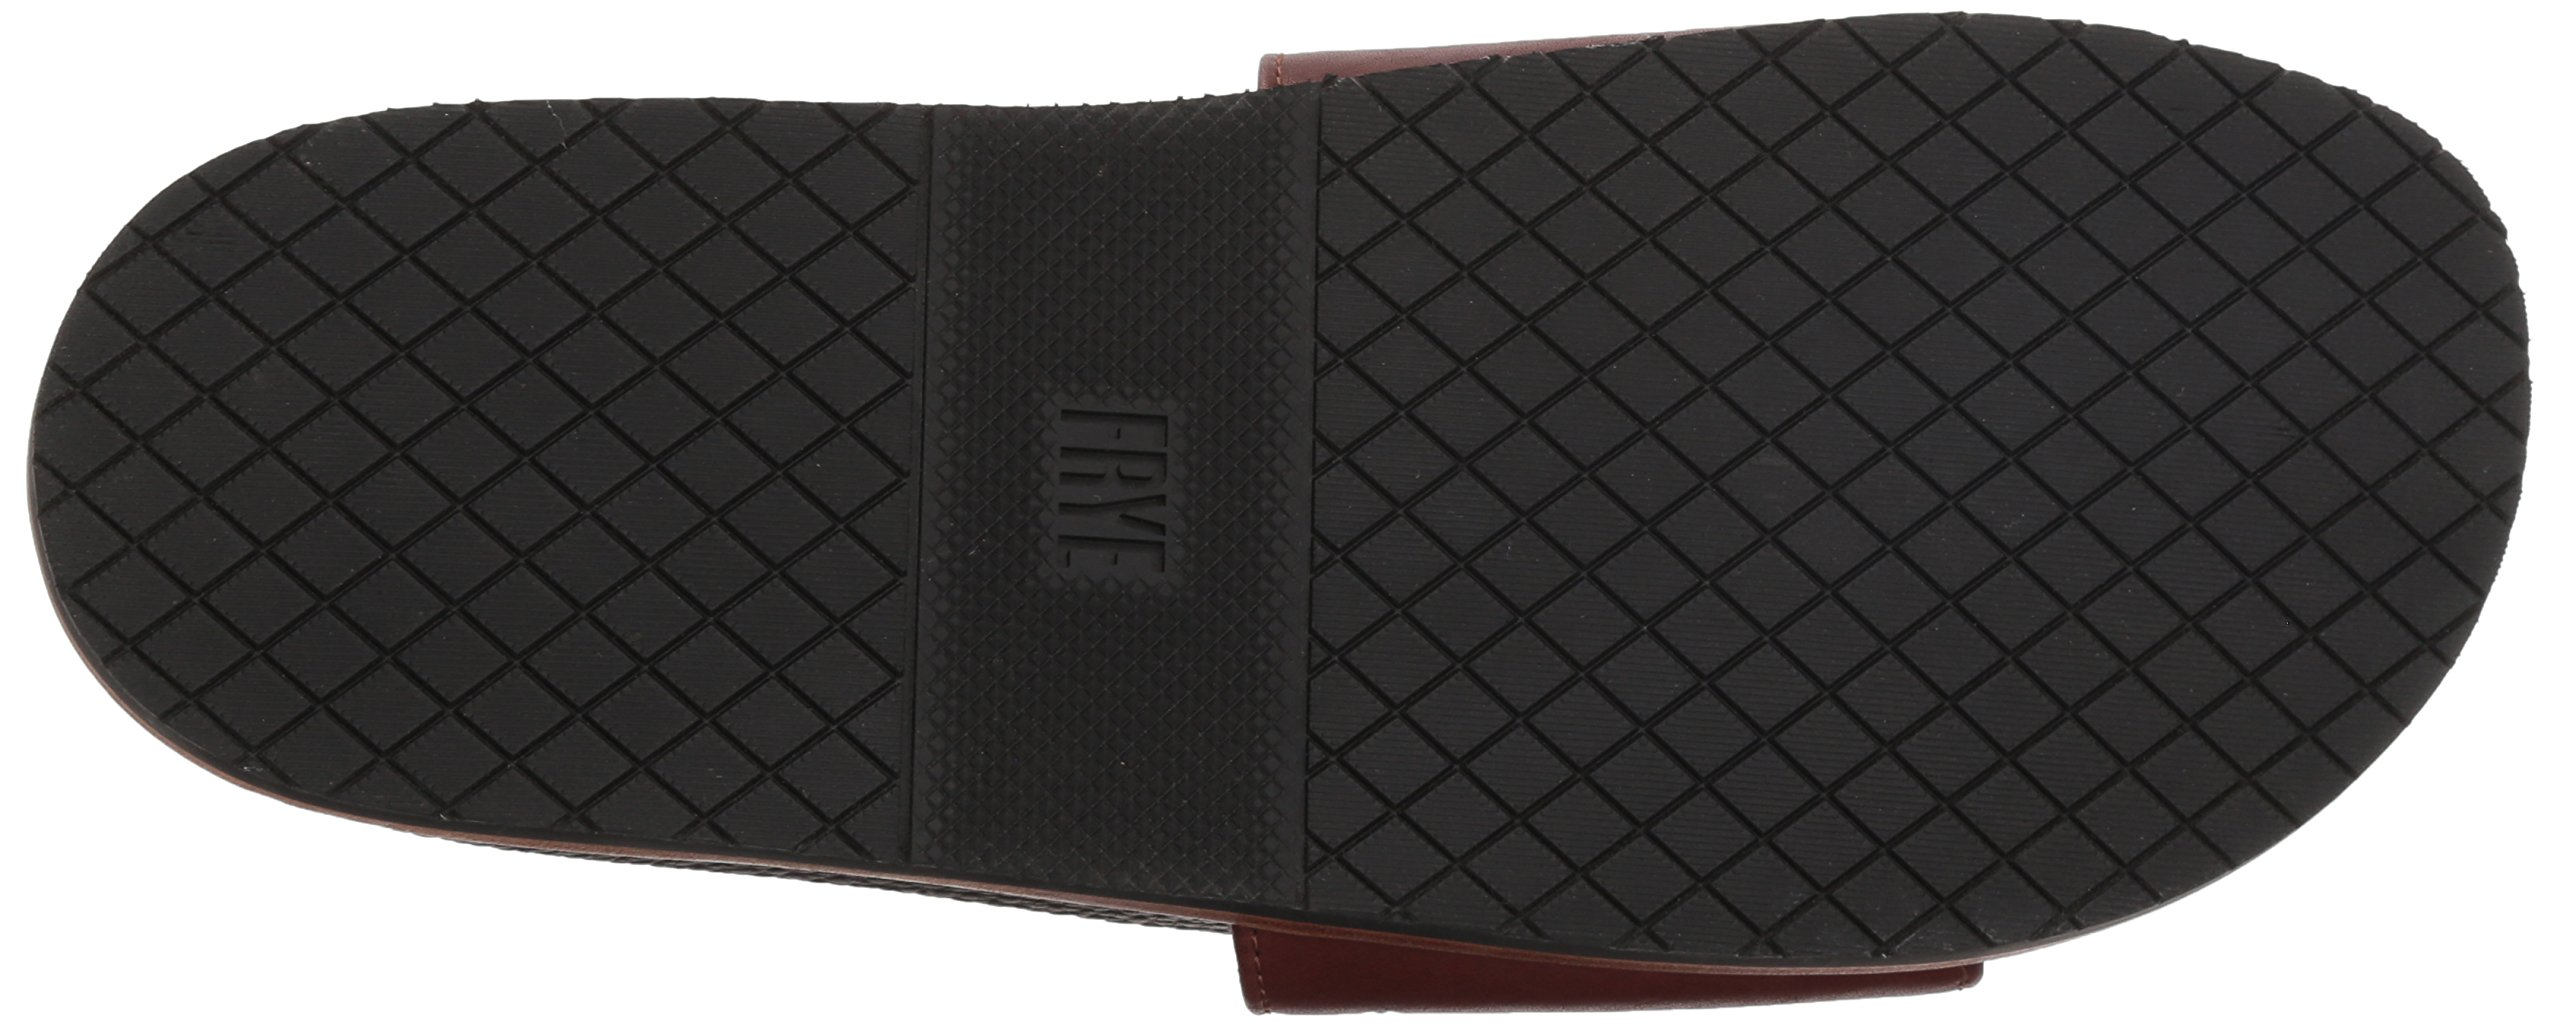 FRYE Men's Emerson Slide Sandal, Brown 12 Medium US by FRYE (Image #3)